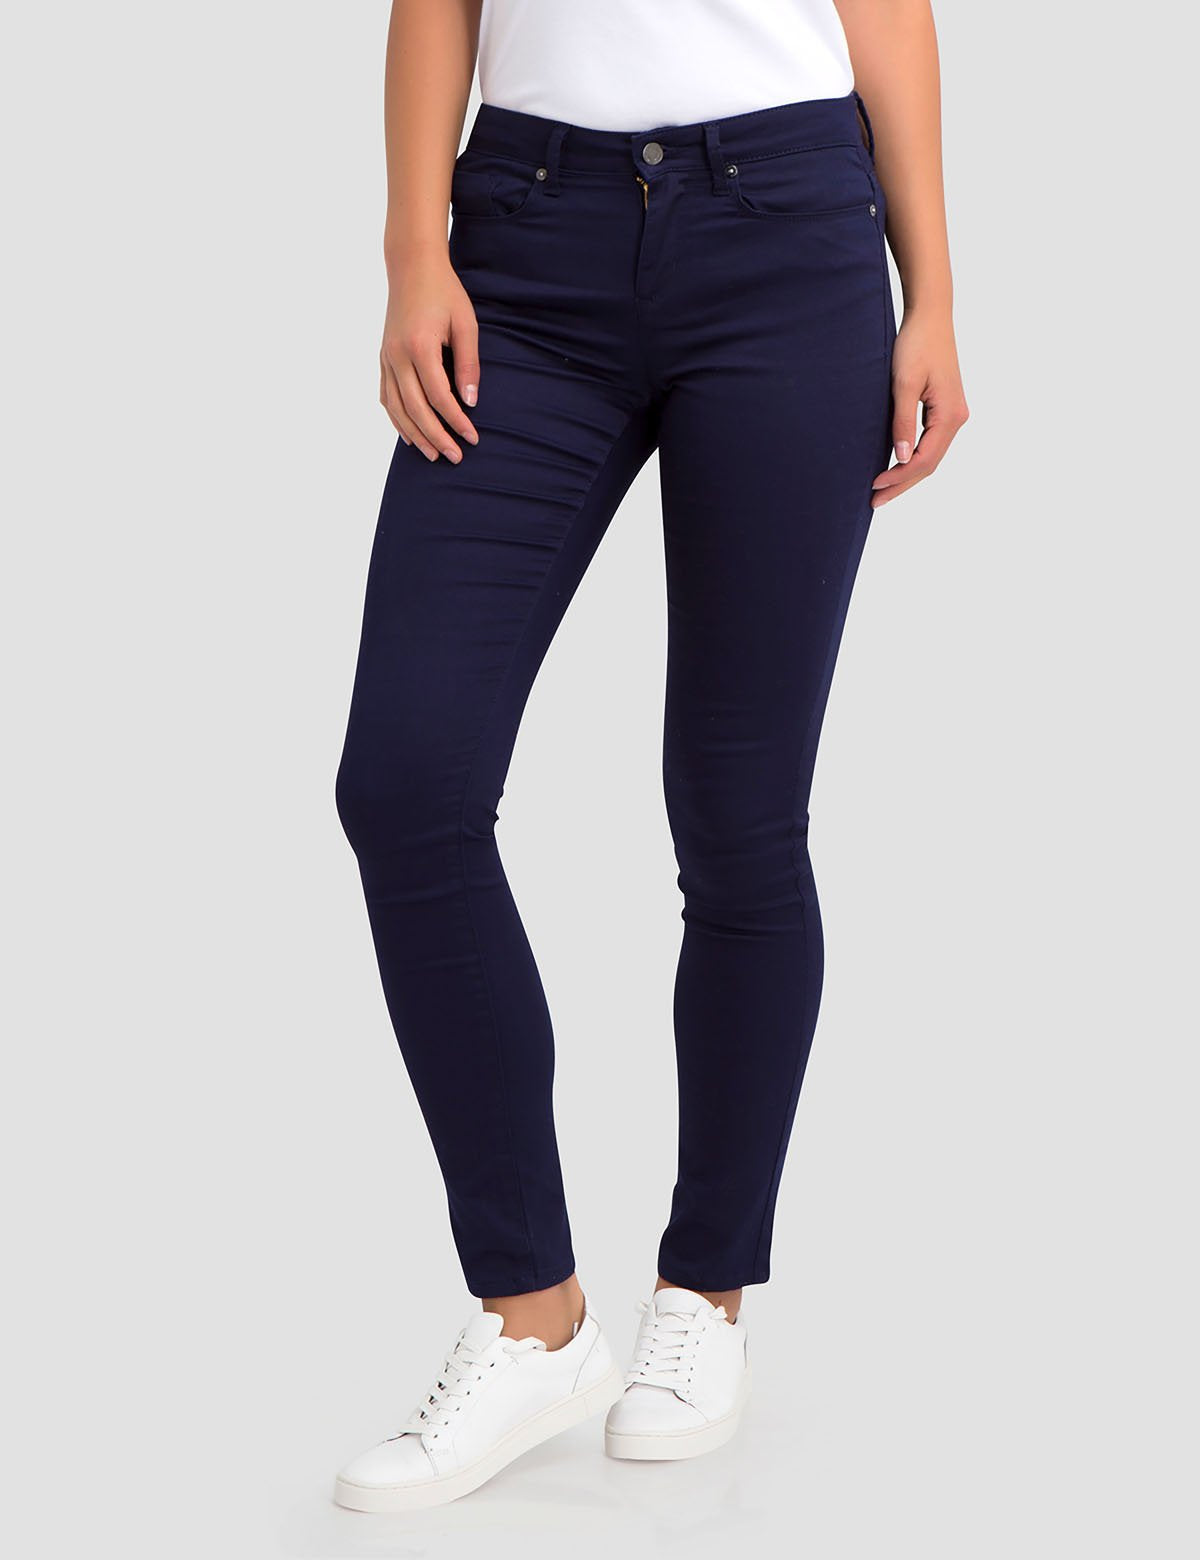 STRETCH SATEEN SKINNY PANT - U.S. Polo Assn.